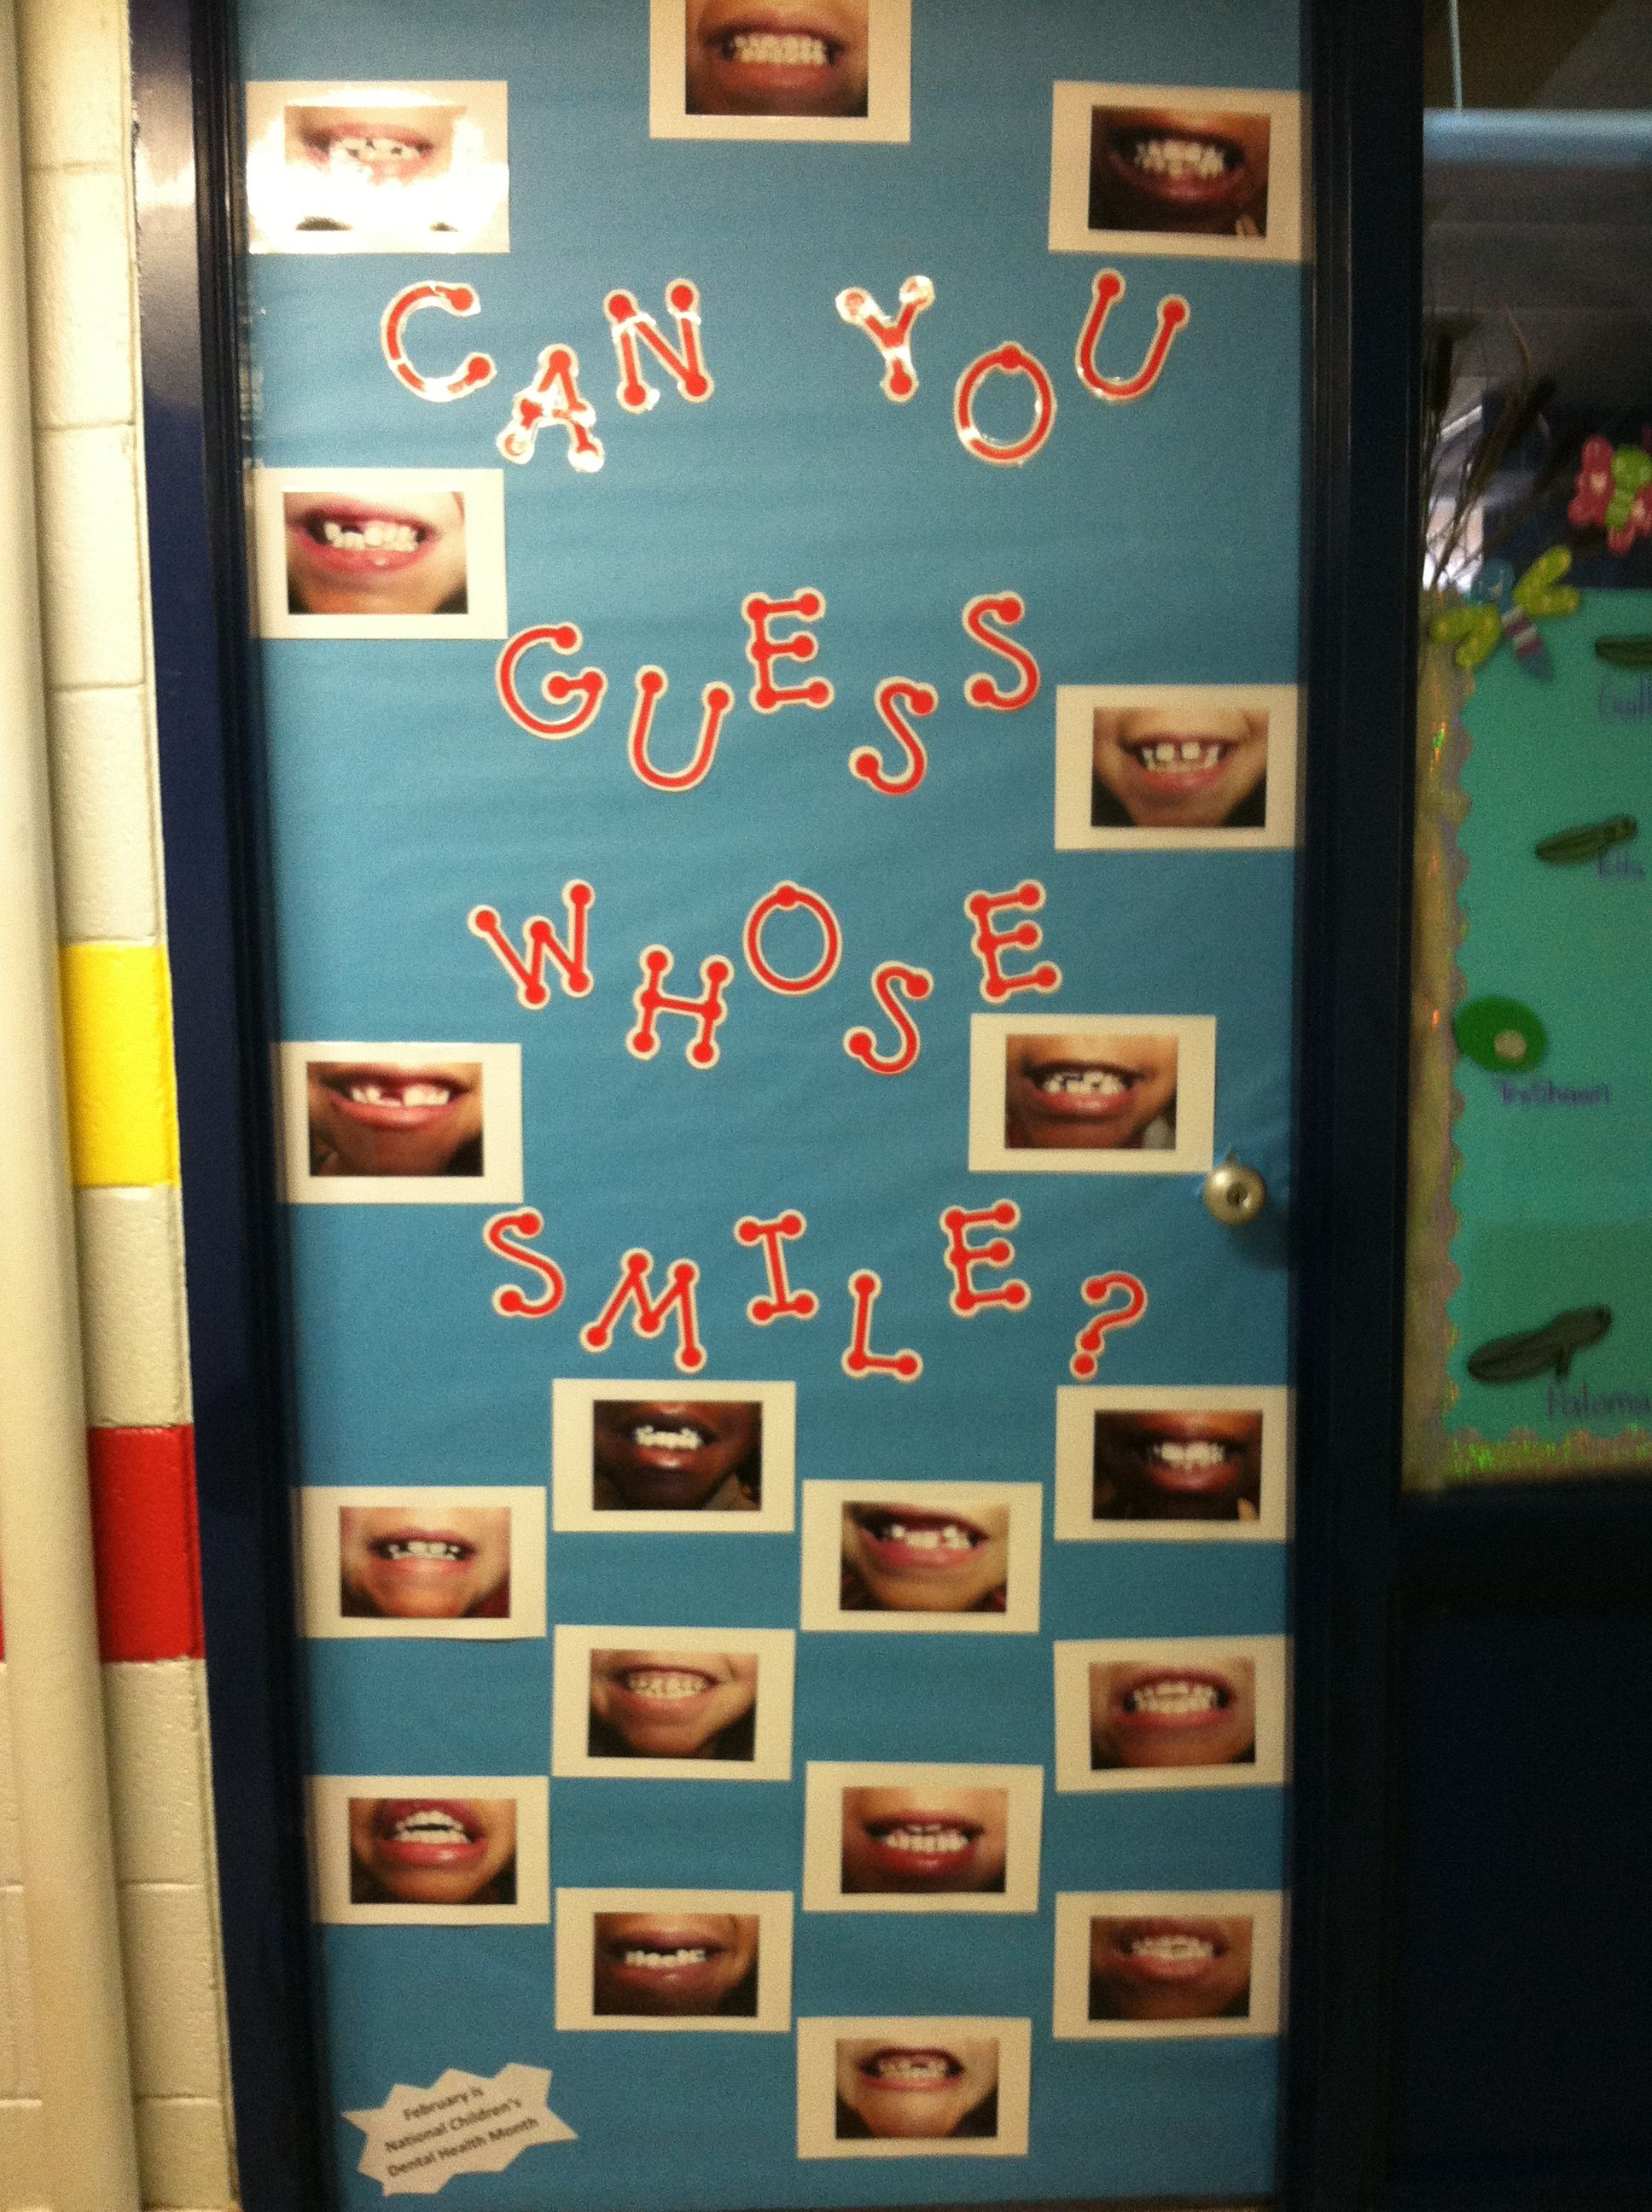 Could Be A Bulletin Board Idea Or Matching Game For Activitiy Time